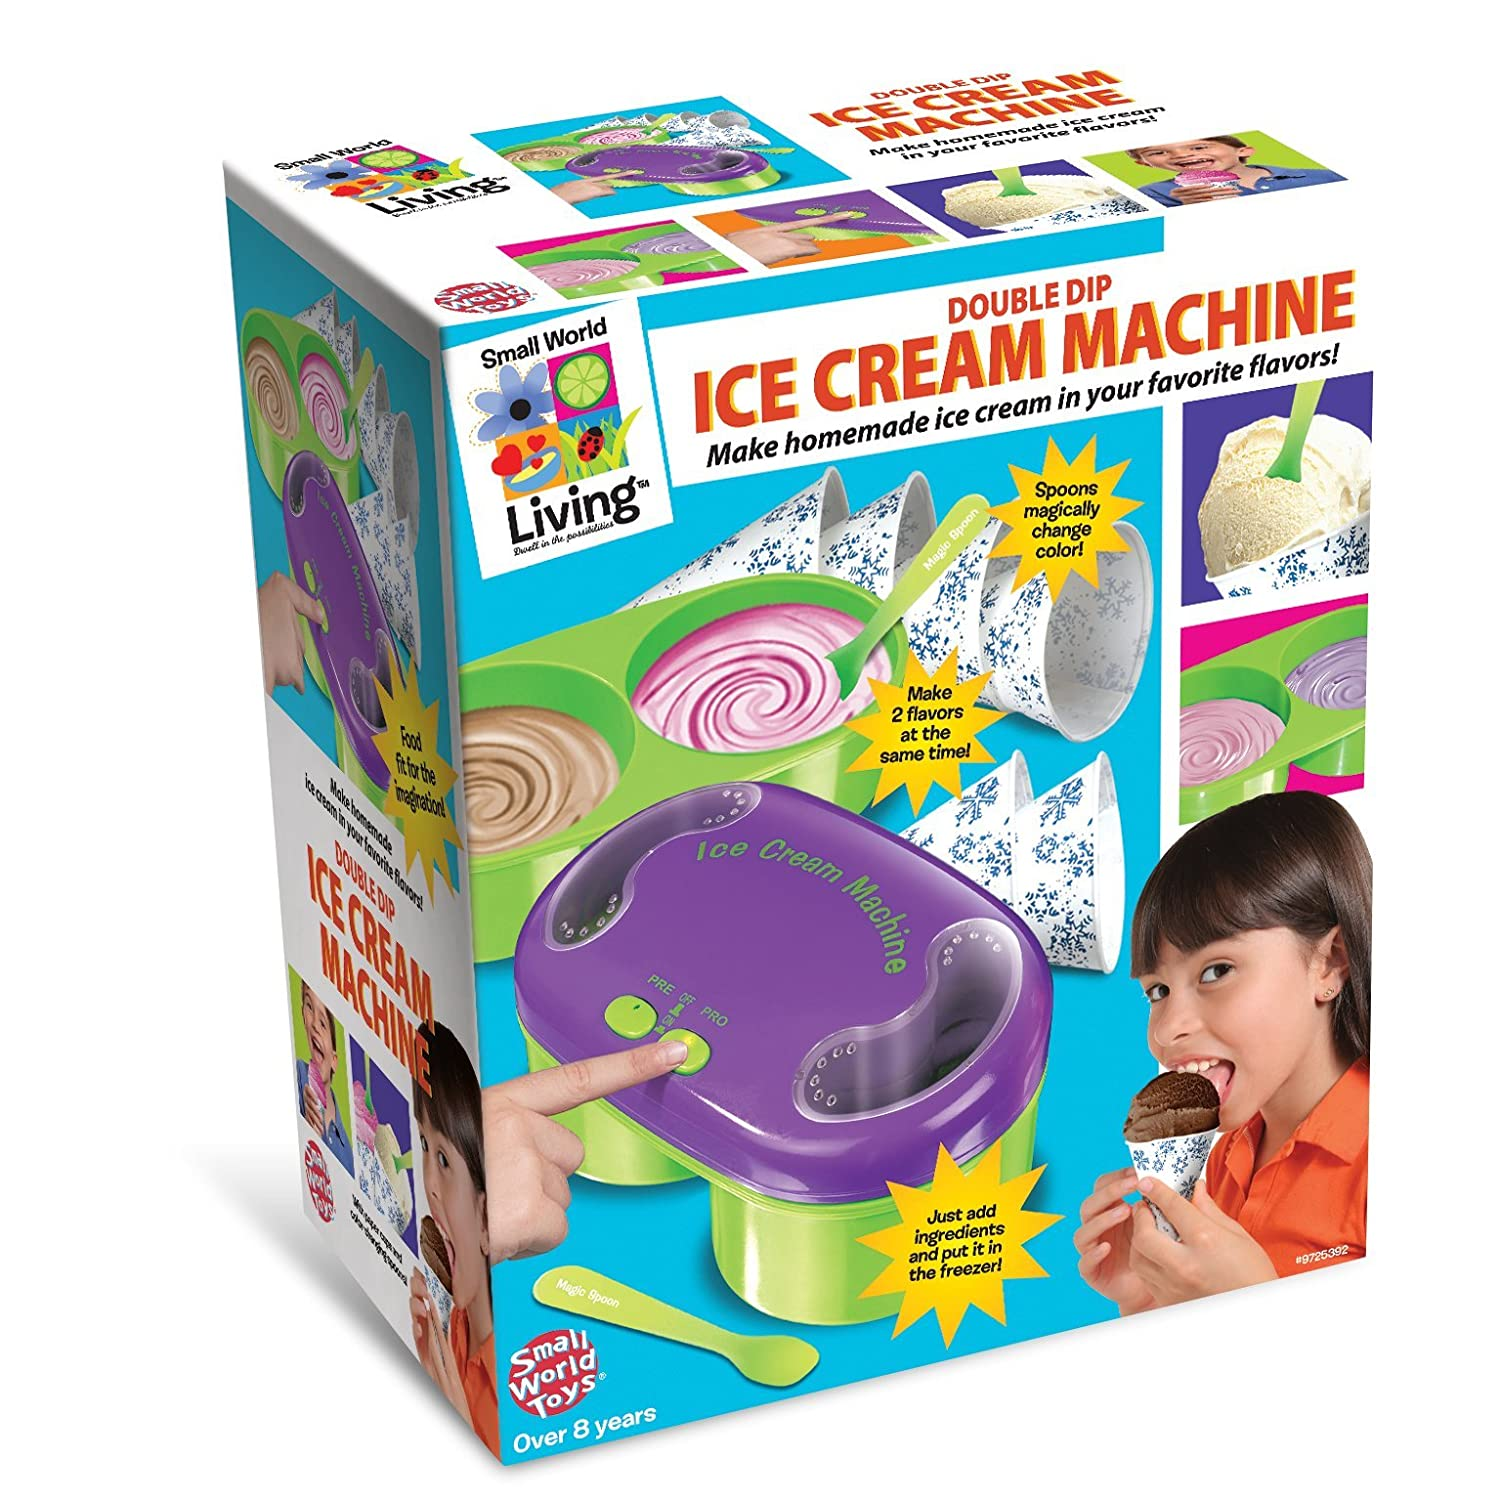 Small World Toys Living - Double Dip Ice Cream Machine B/O